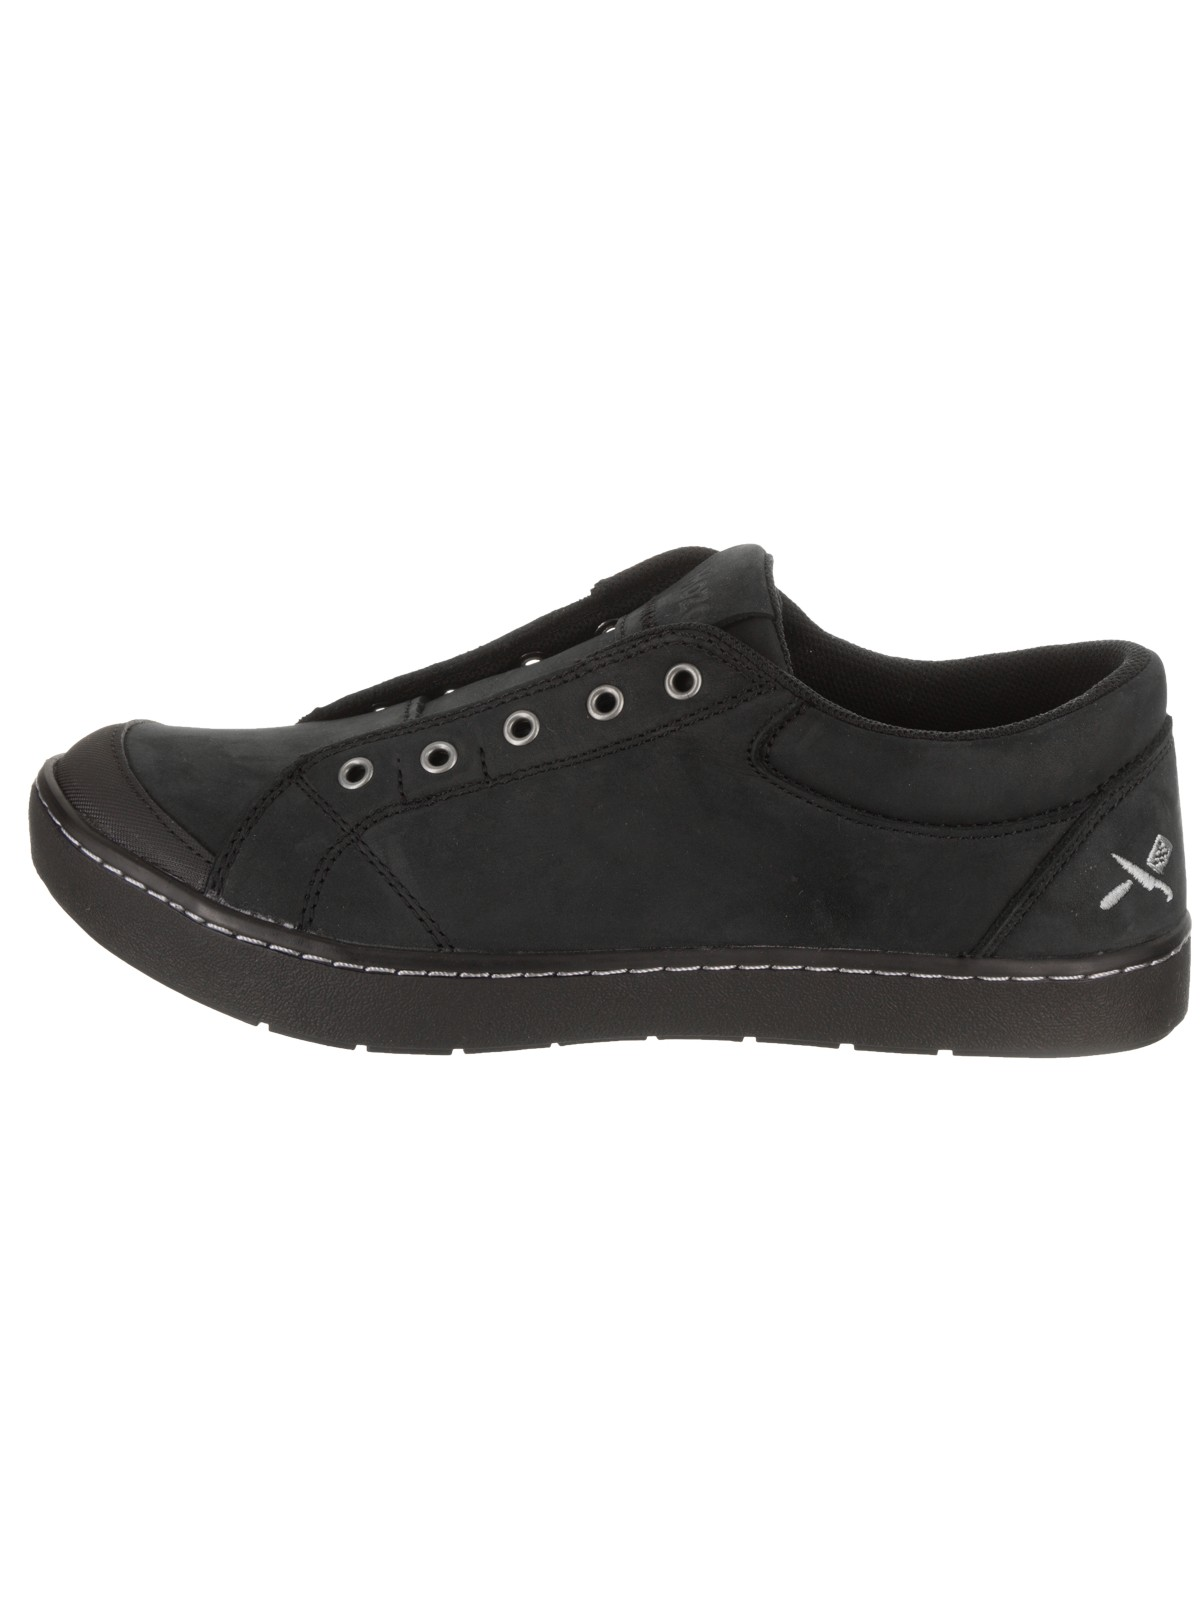 Mozo Women's The Maven Casual Shoe